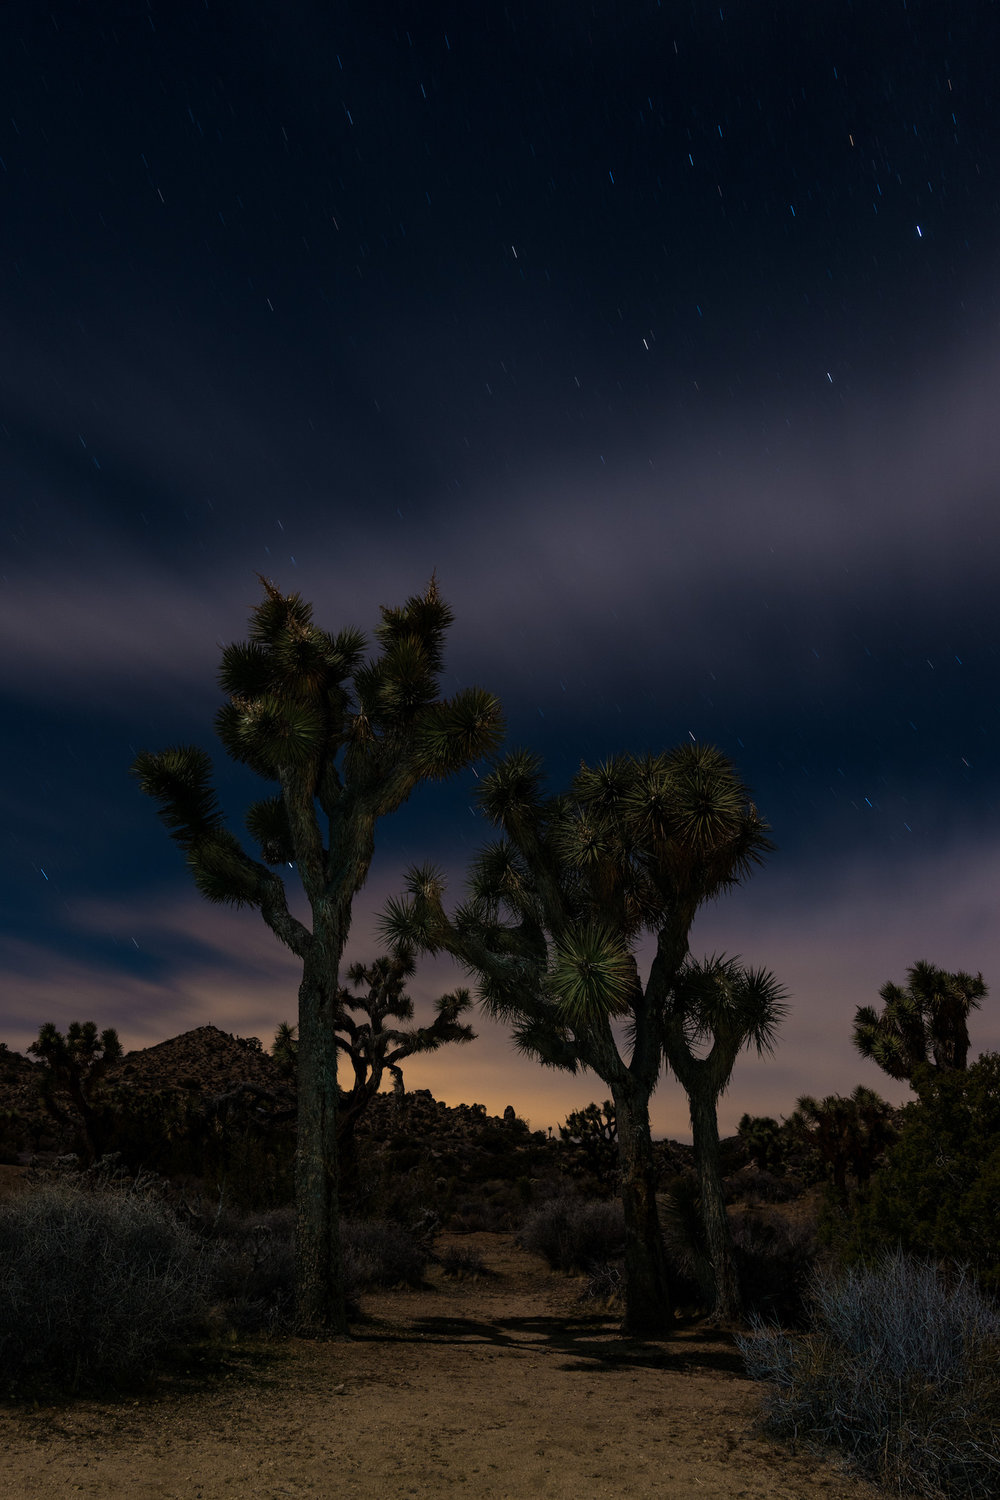 A 2 minute exposure of Joshua Tree National Park - that took 4 minutes to get.